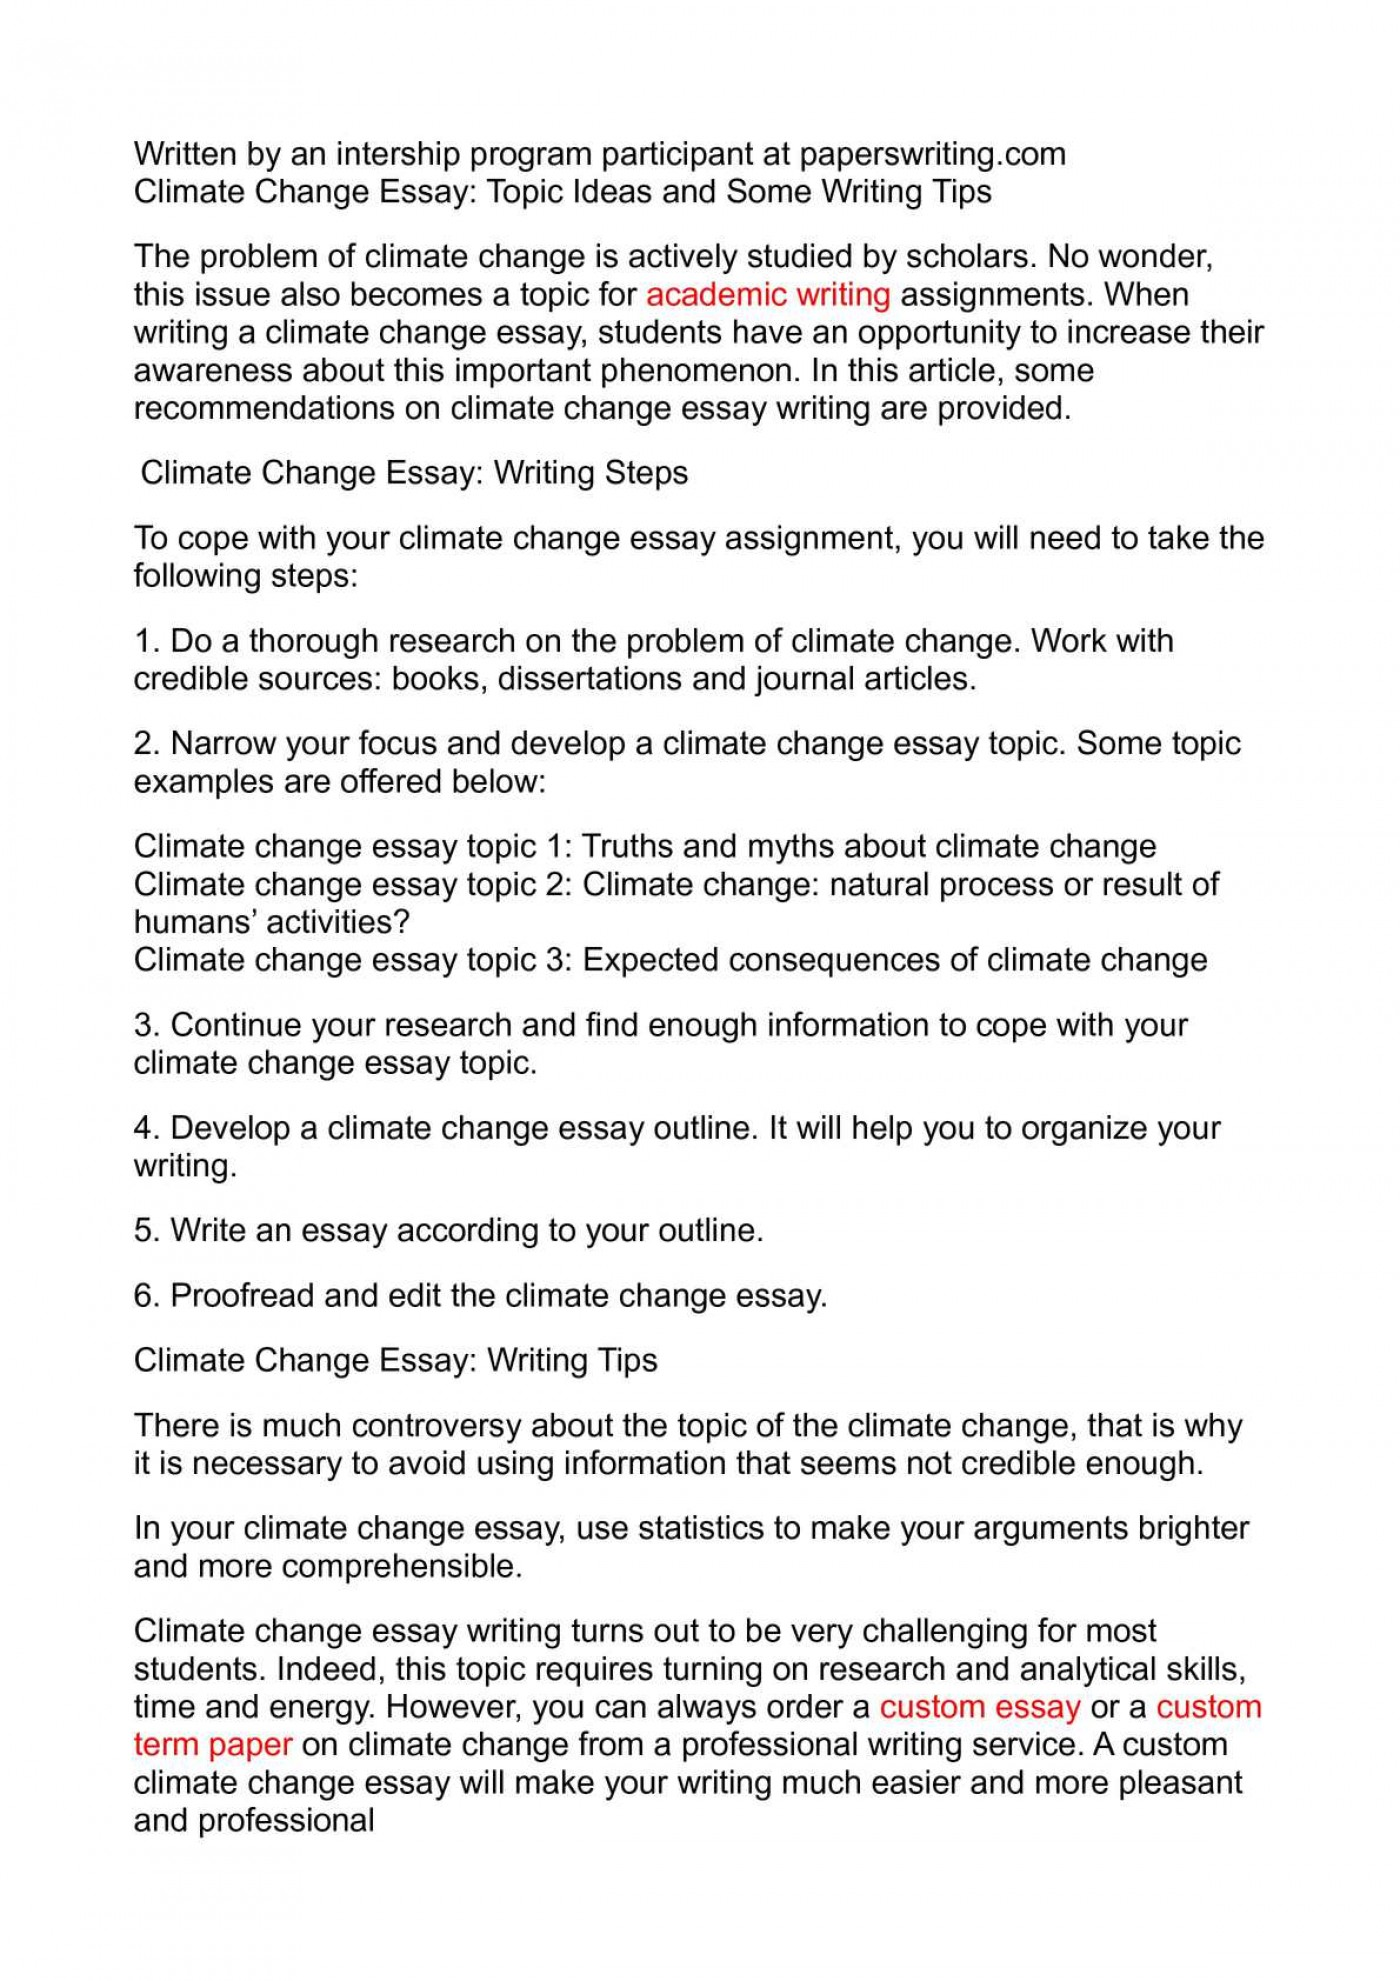 012 Climate Change Essay Topics Uncategorized Global Warming Topic Ways To St Oracleboss Research Paper20 Paper Unusual Ideas For High School Good 1400